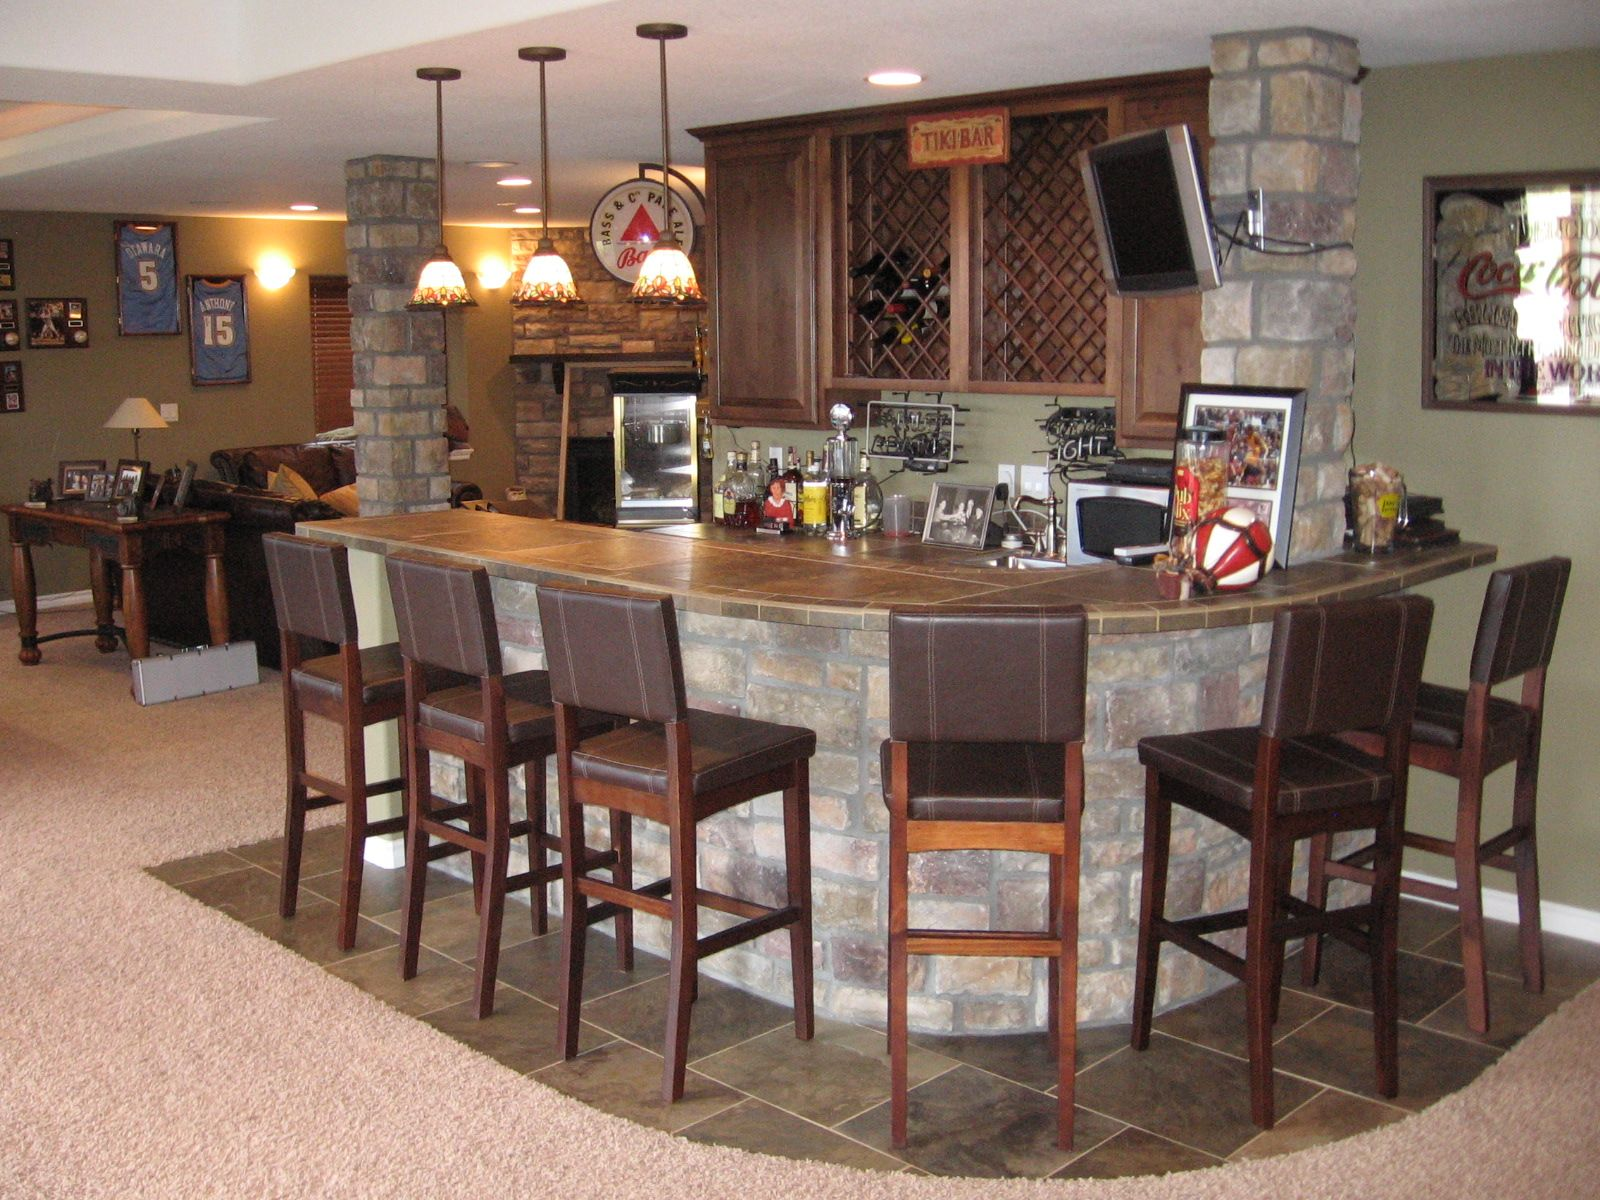 Awesome Bar In Basement Design Ideas With Modular Curved Kitchen